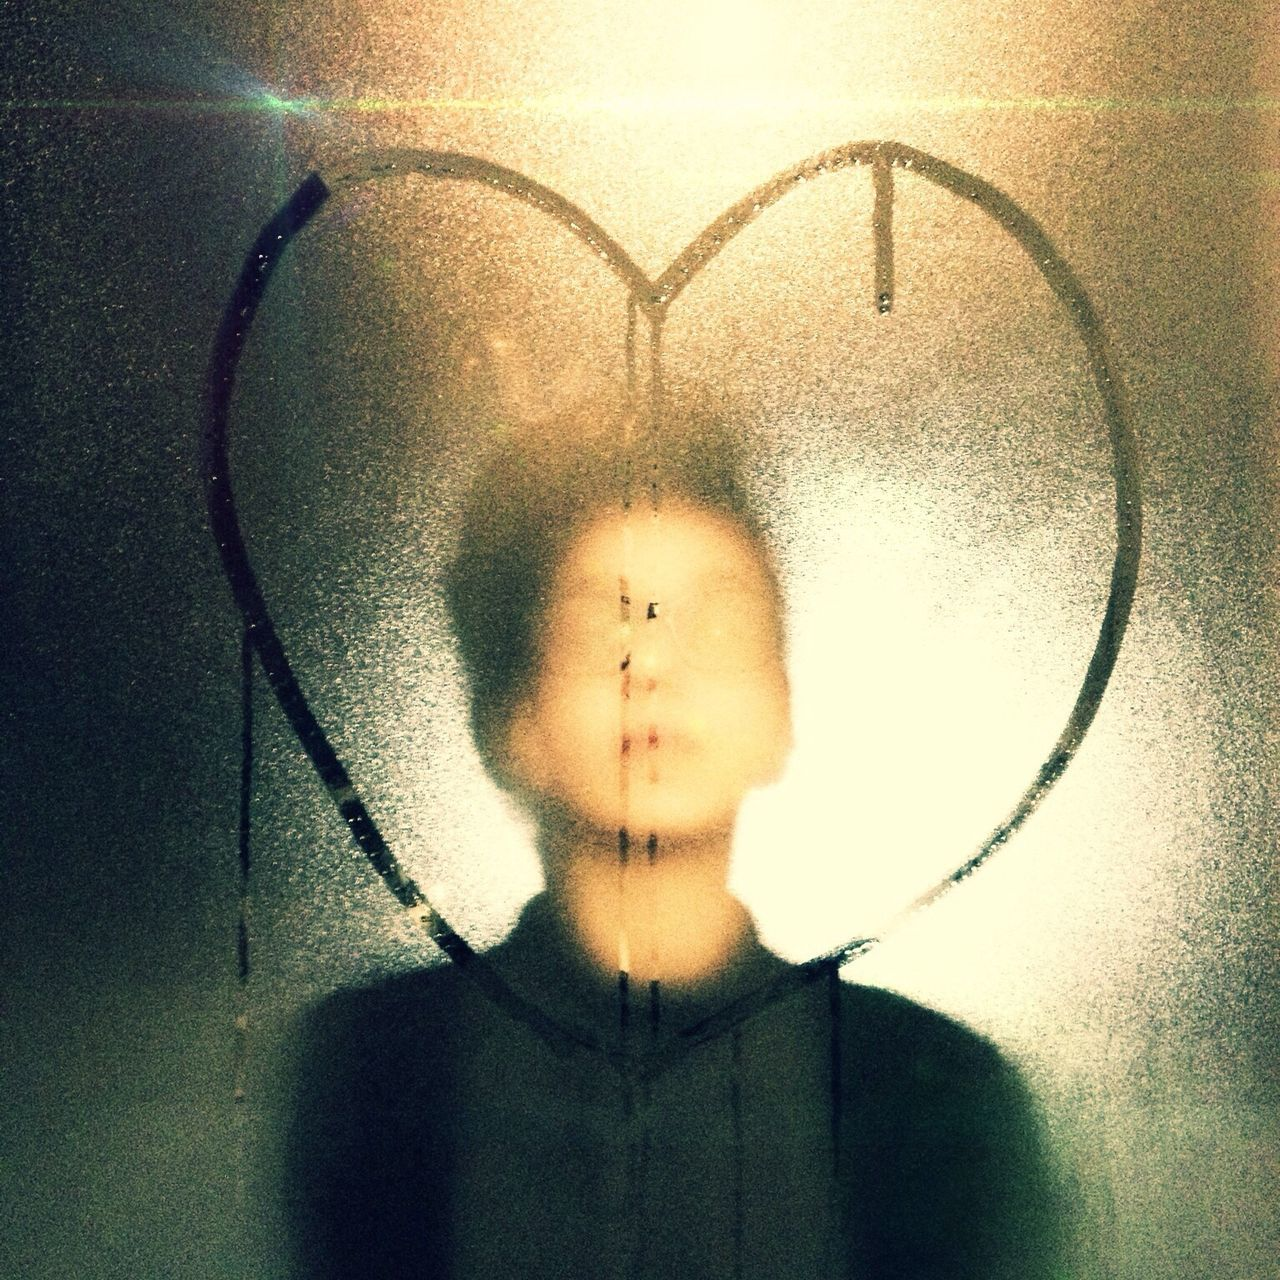 Man standing against heart shape on condense glass